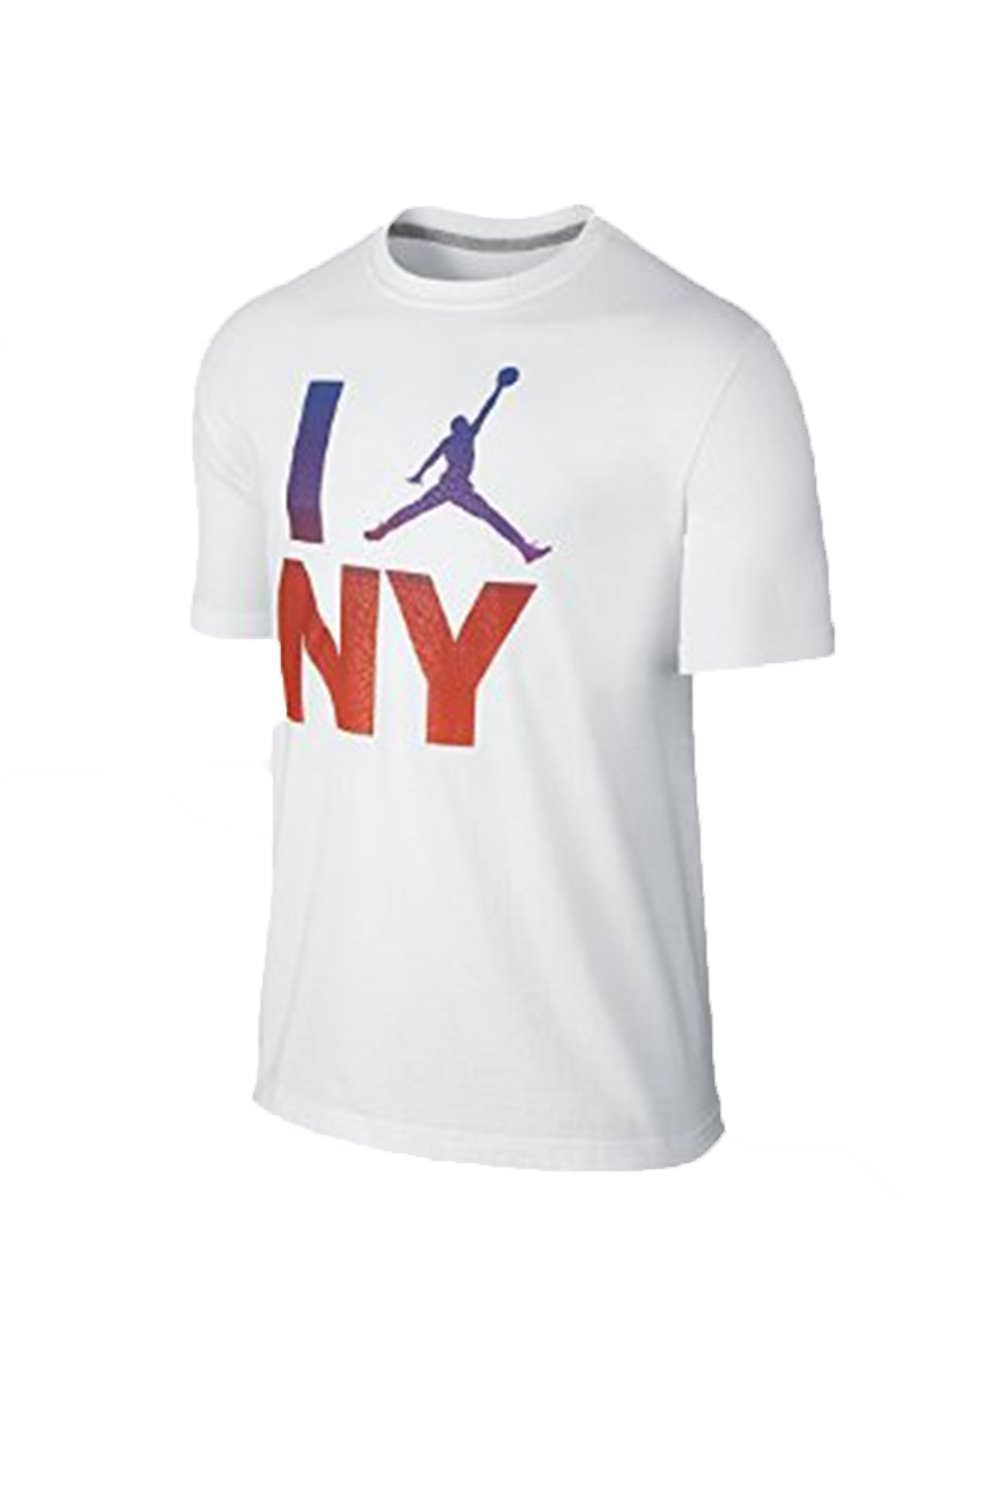 NIKE Men's Air Jordan I Love Ny T- Shirt- White/Red- Large